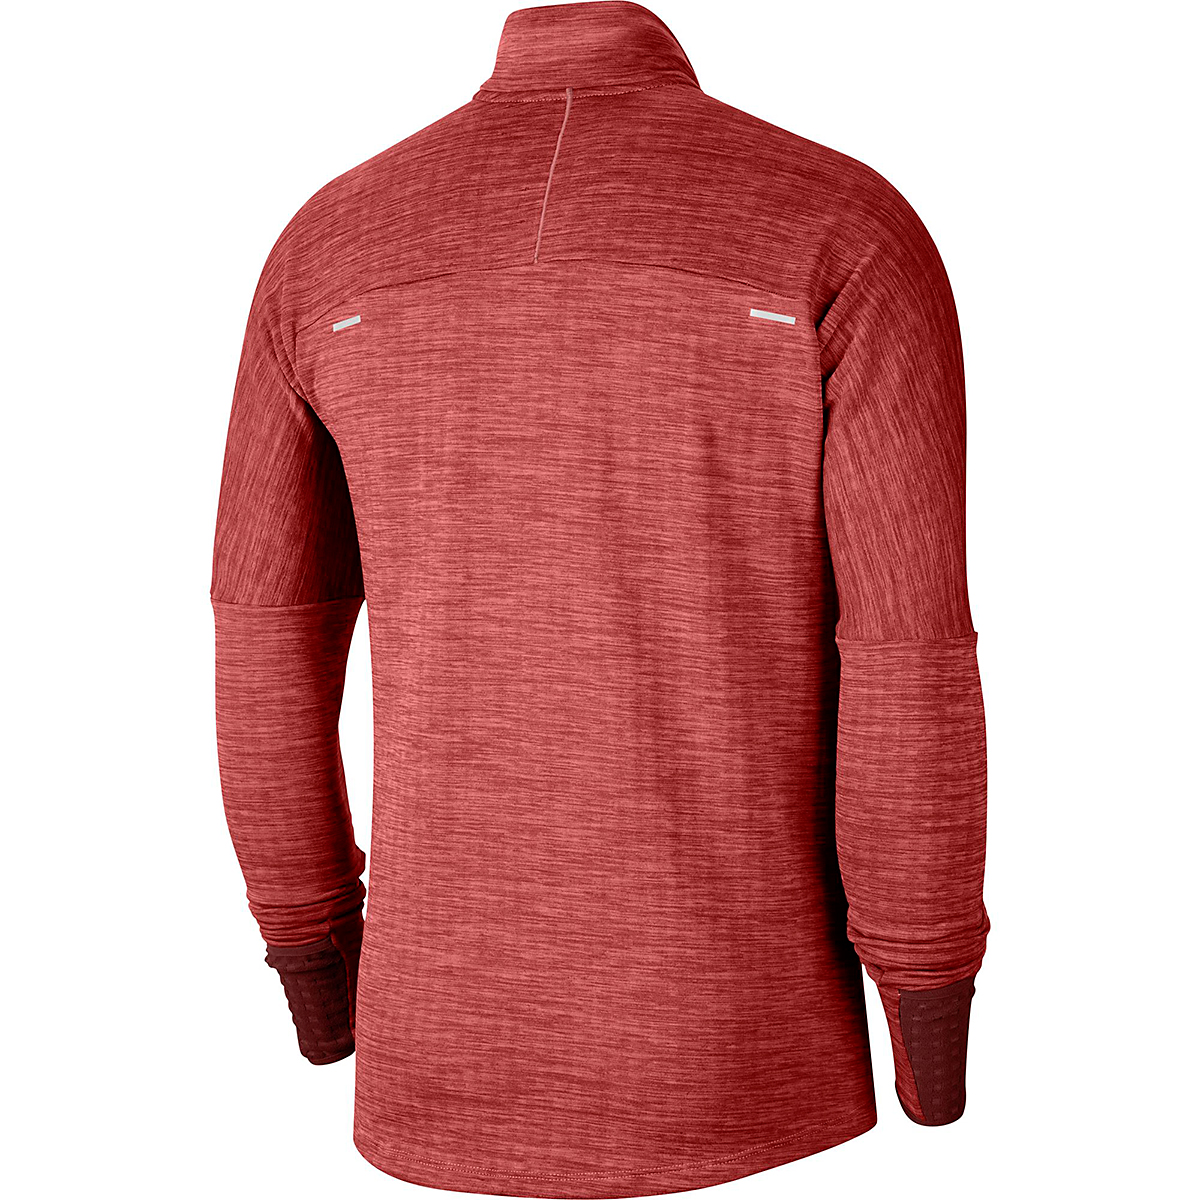 Men's Nike Sphere Half Zip Long Sleeve Shirt - Color: Mystic Dates/Heather/Chile Red - Size: S, Mystic Dates/Heather/Chile Red, large, image 4